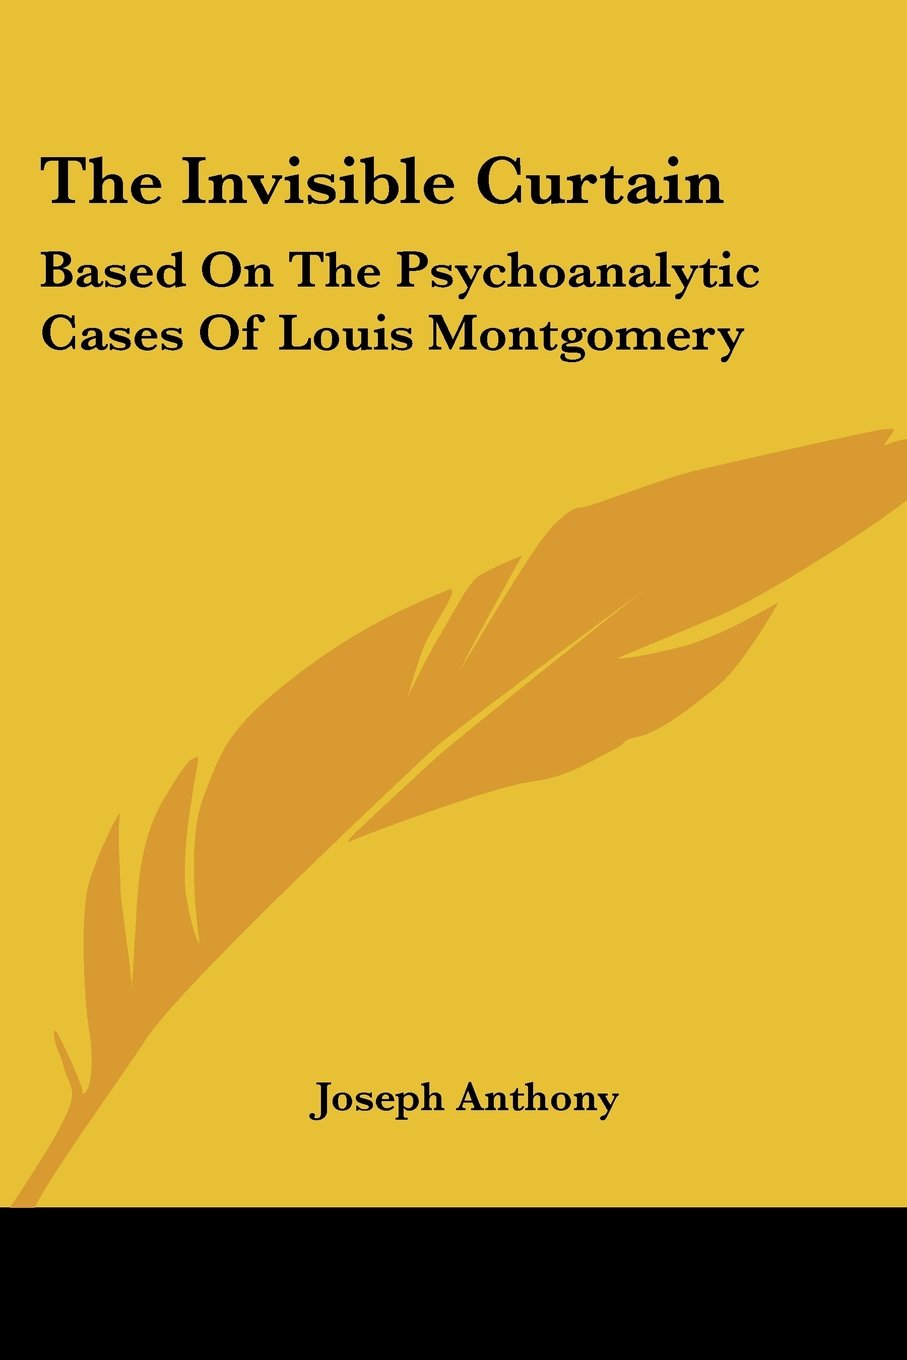 The Invisible Curtain: Based on the Psychoanalytic Cases of Louis Montgomery ebook